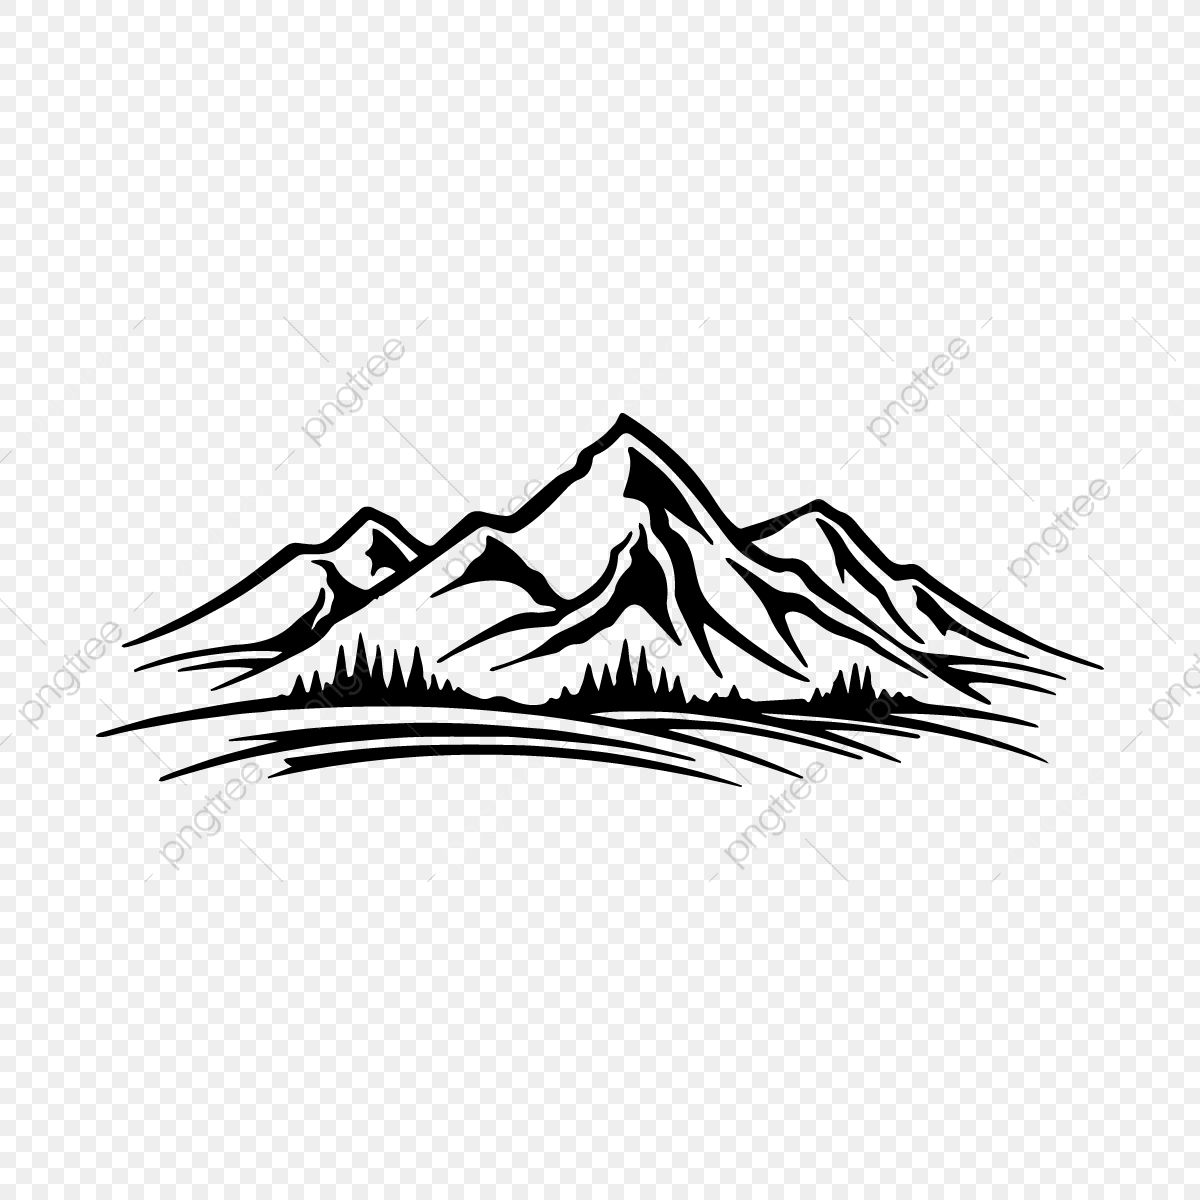 Natural Hills And Mountains Hill Clipart Mountain Hills Png And Vector With Transparent Background For Free Download Nature Logo Design Tattoo Coloring Book Mountain Tattoo